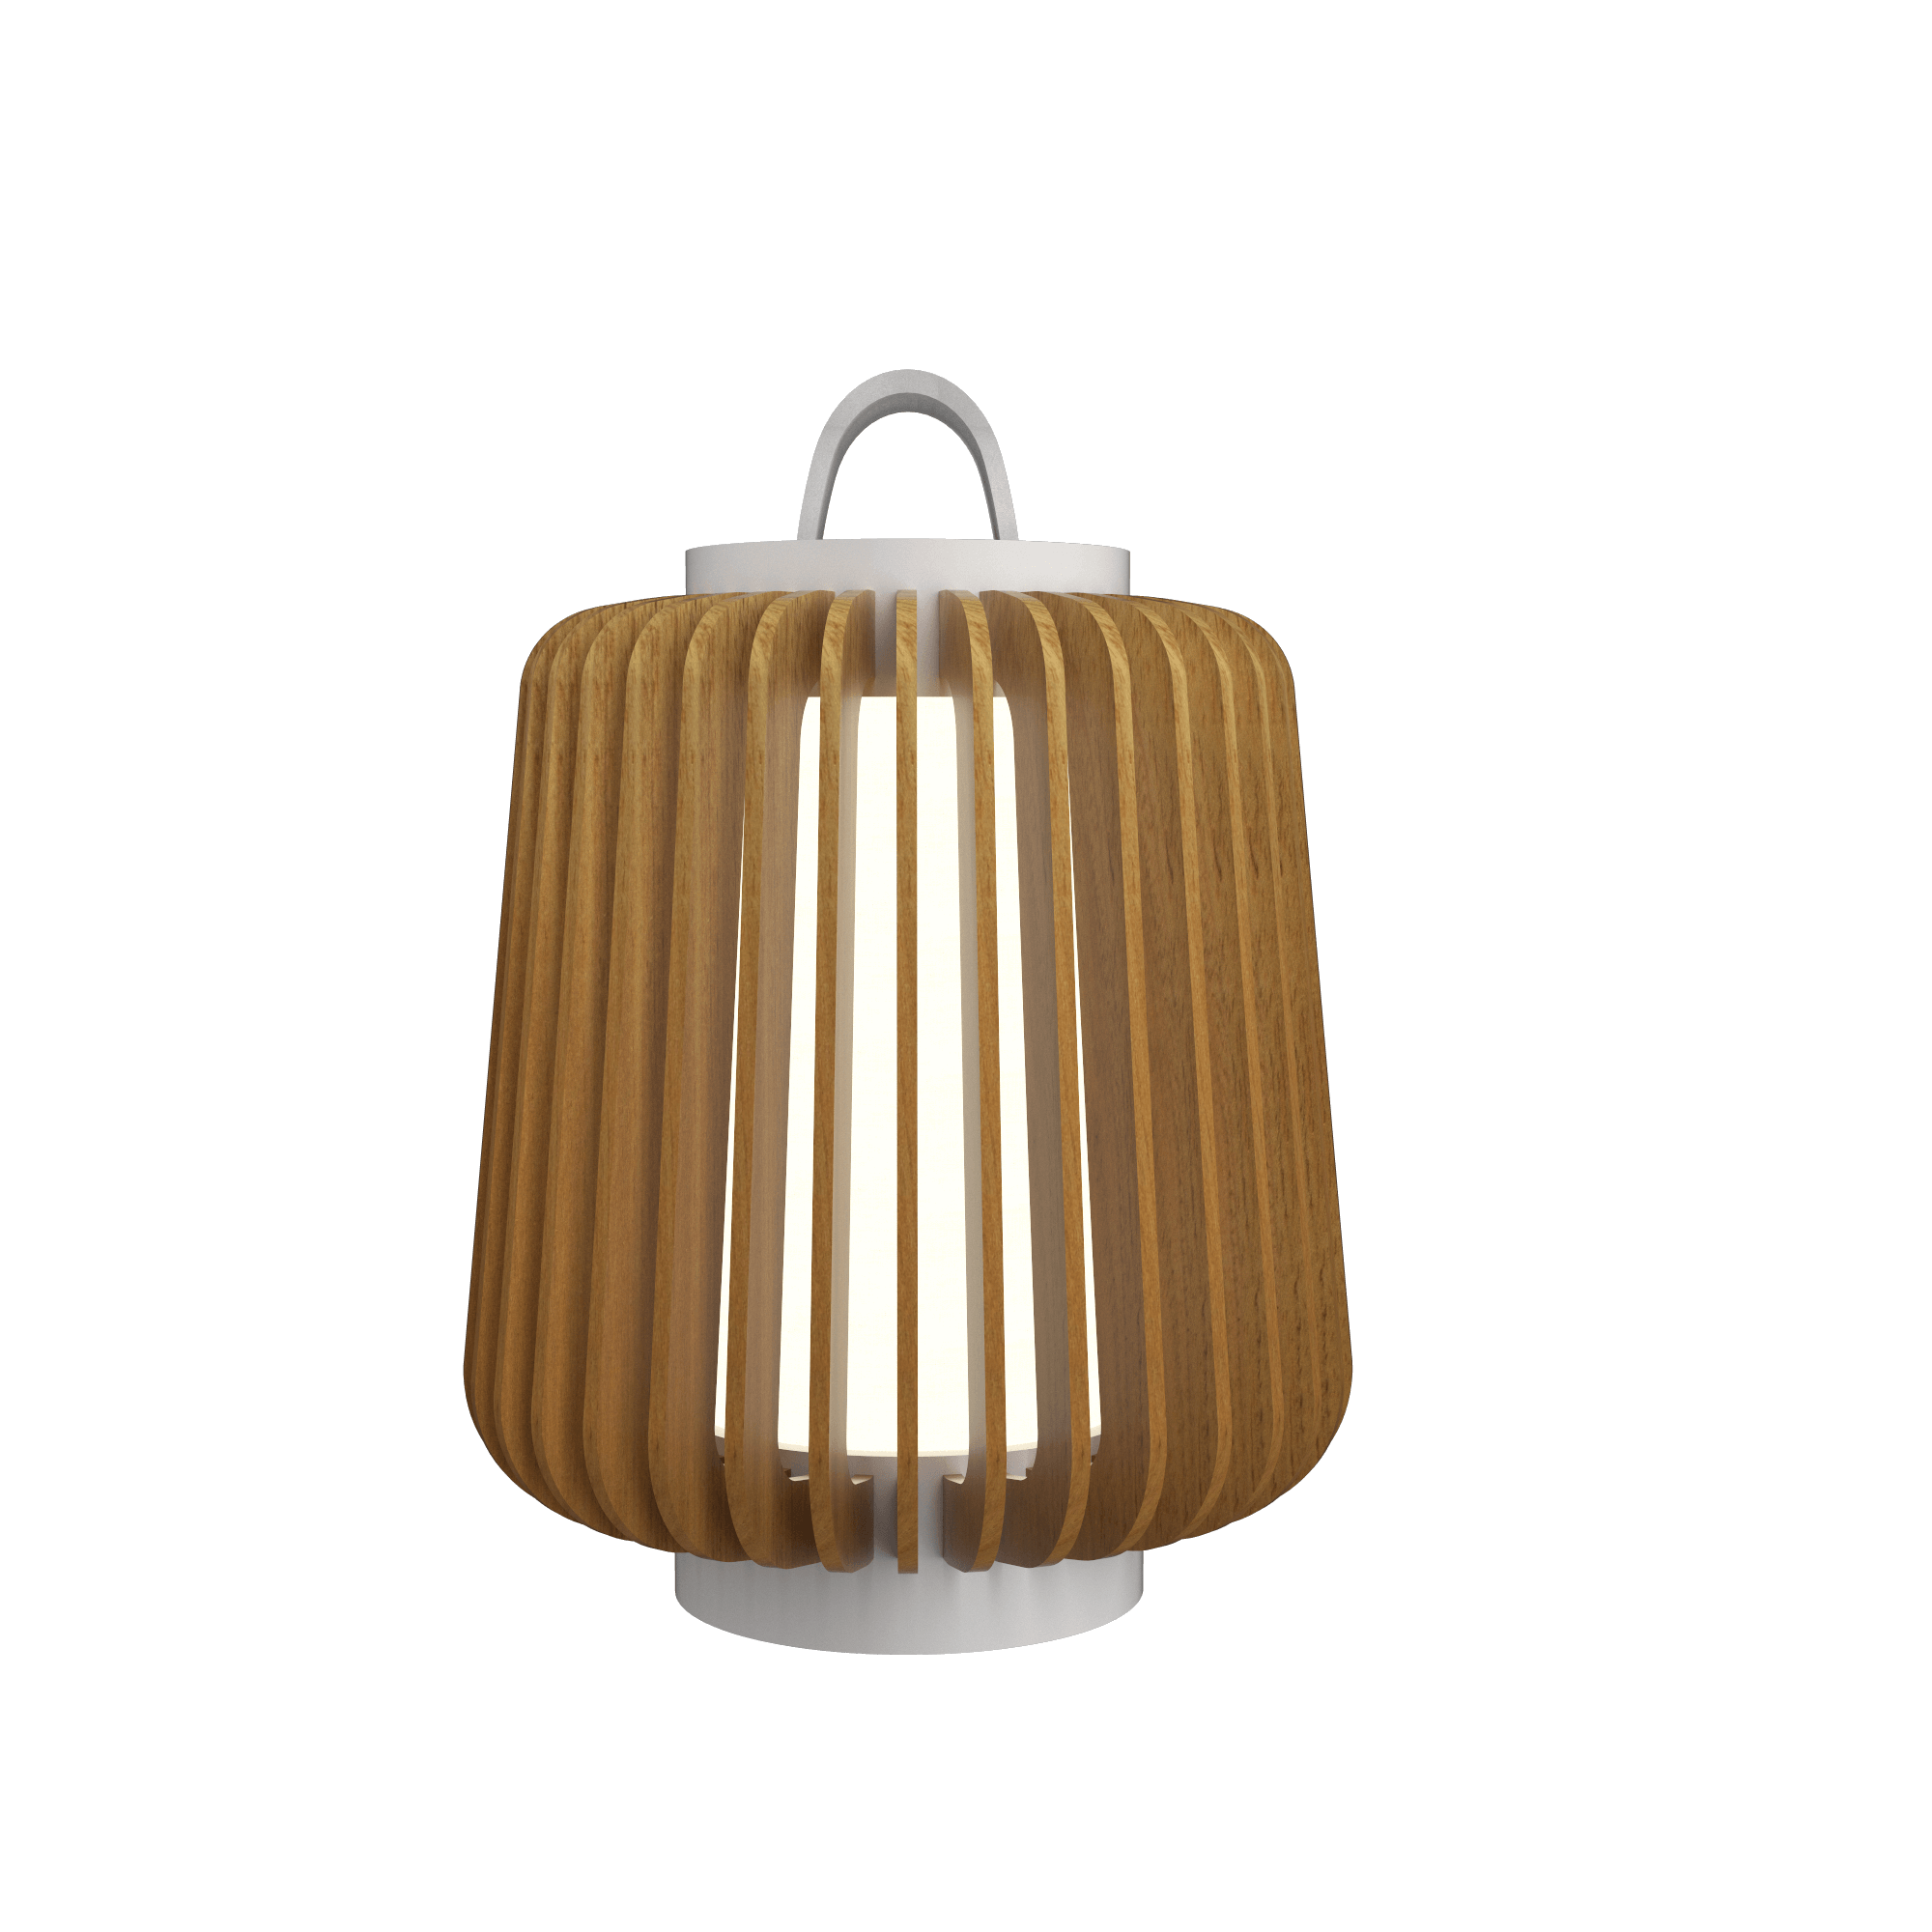 Table Lamp Accord Stecche Di Legno 7059 - Stecche Di Legno Line Accord Lighting | 09. Louro Freijó